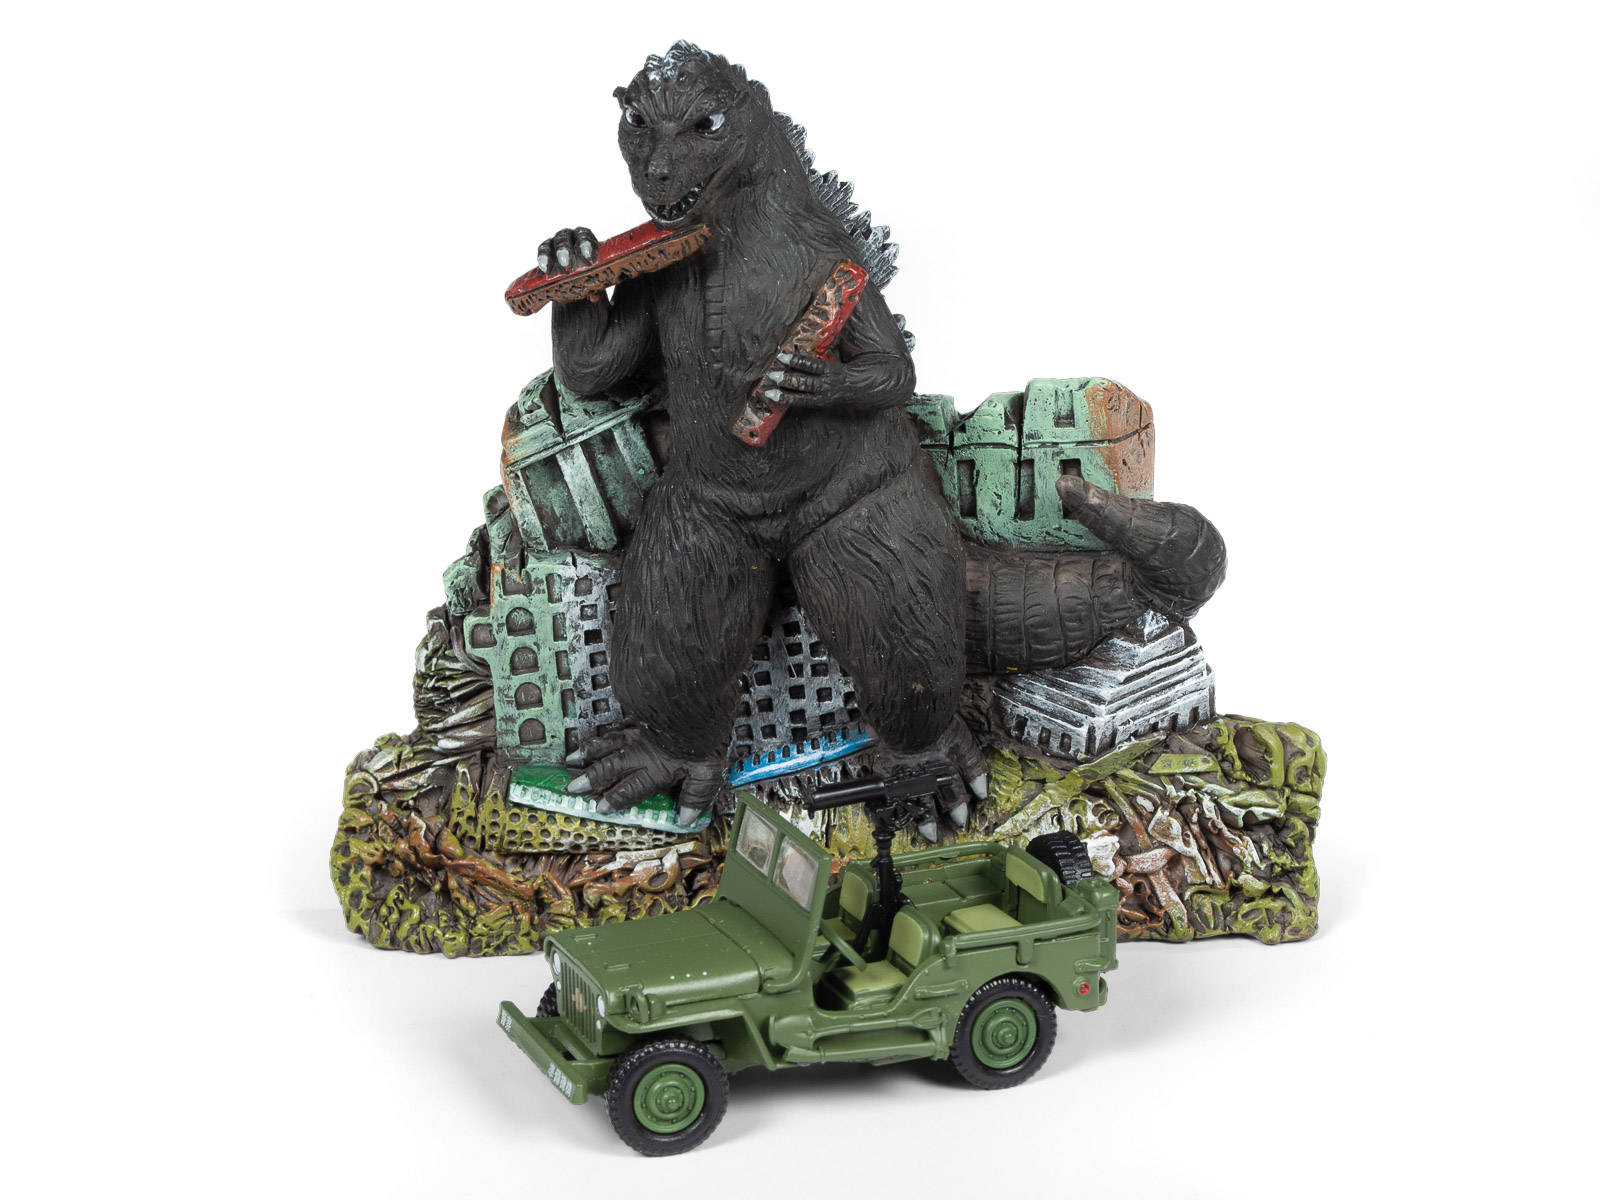 Godzilla Silver Screen Series Façade Diorama - Japan Poilce Reserve Corps. Willys MB Jeep